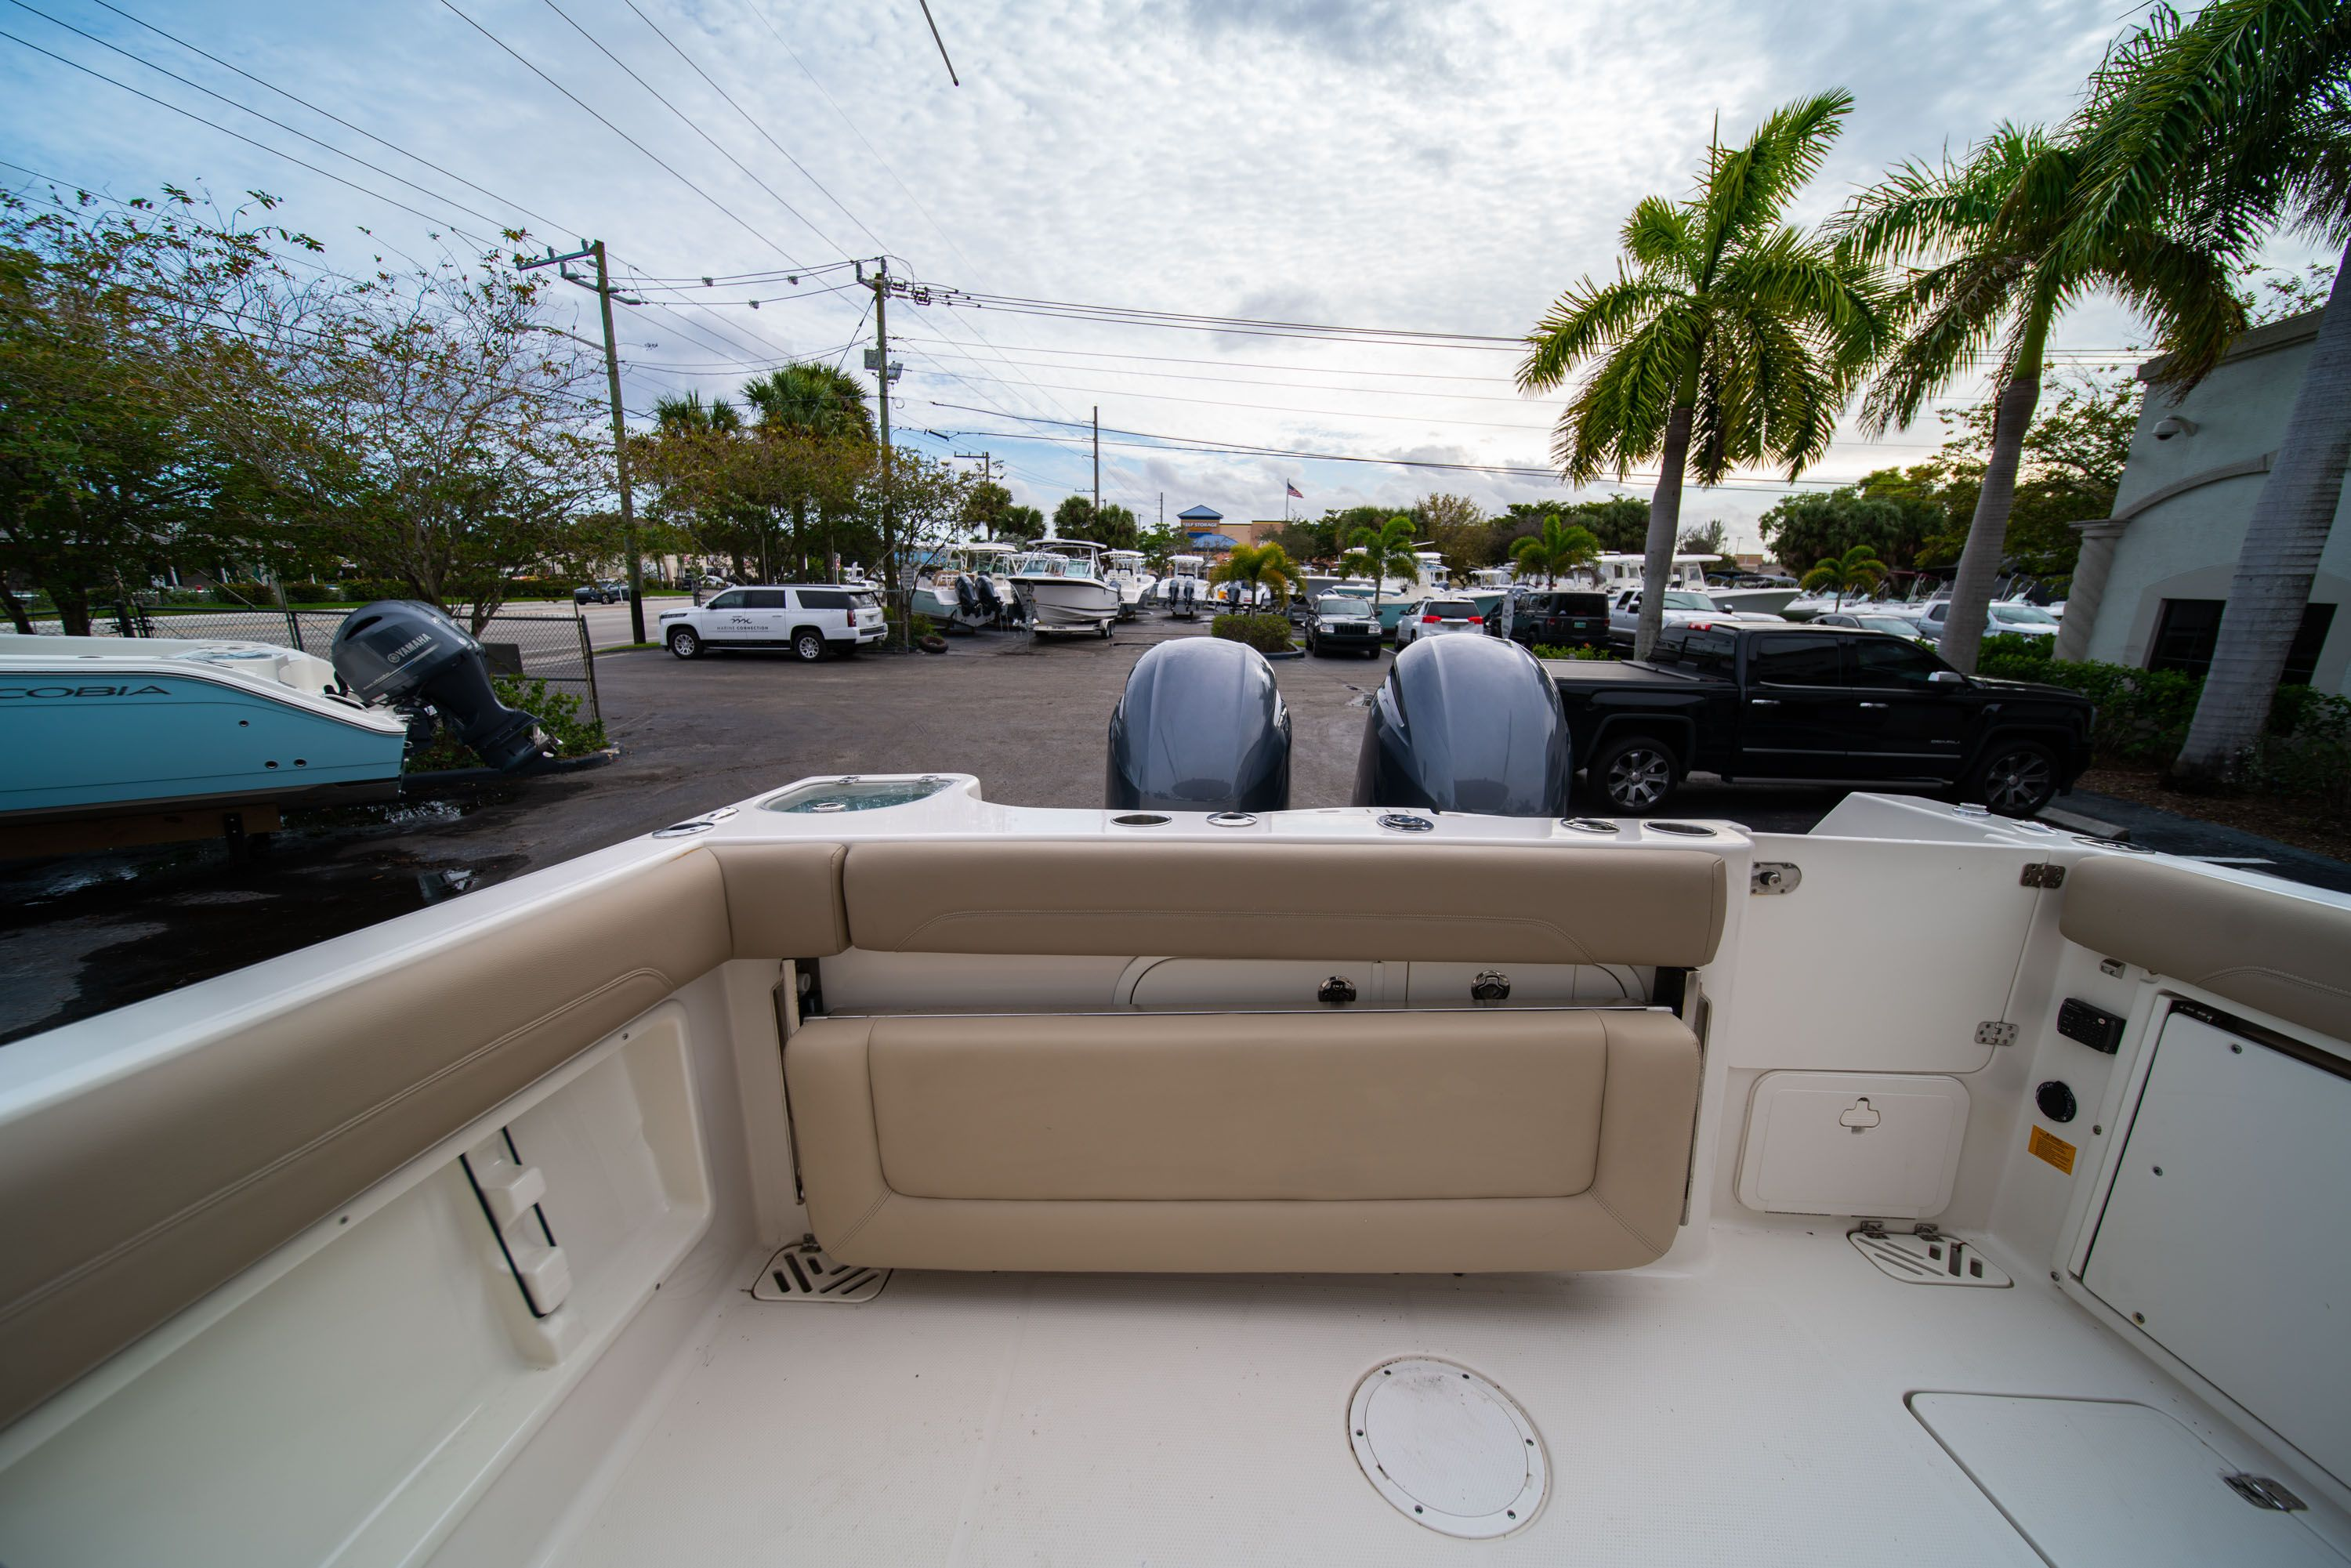 Thumbnail 15 for Used 2017 Sailfish 275 Dual Console boat for sale in West Palm Beach, FL